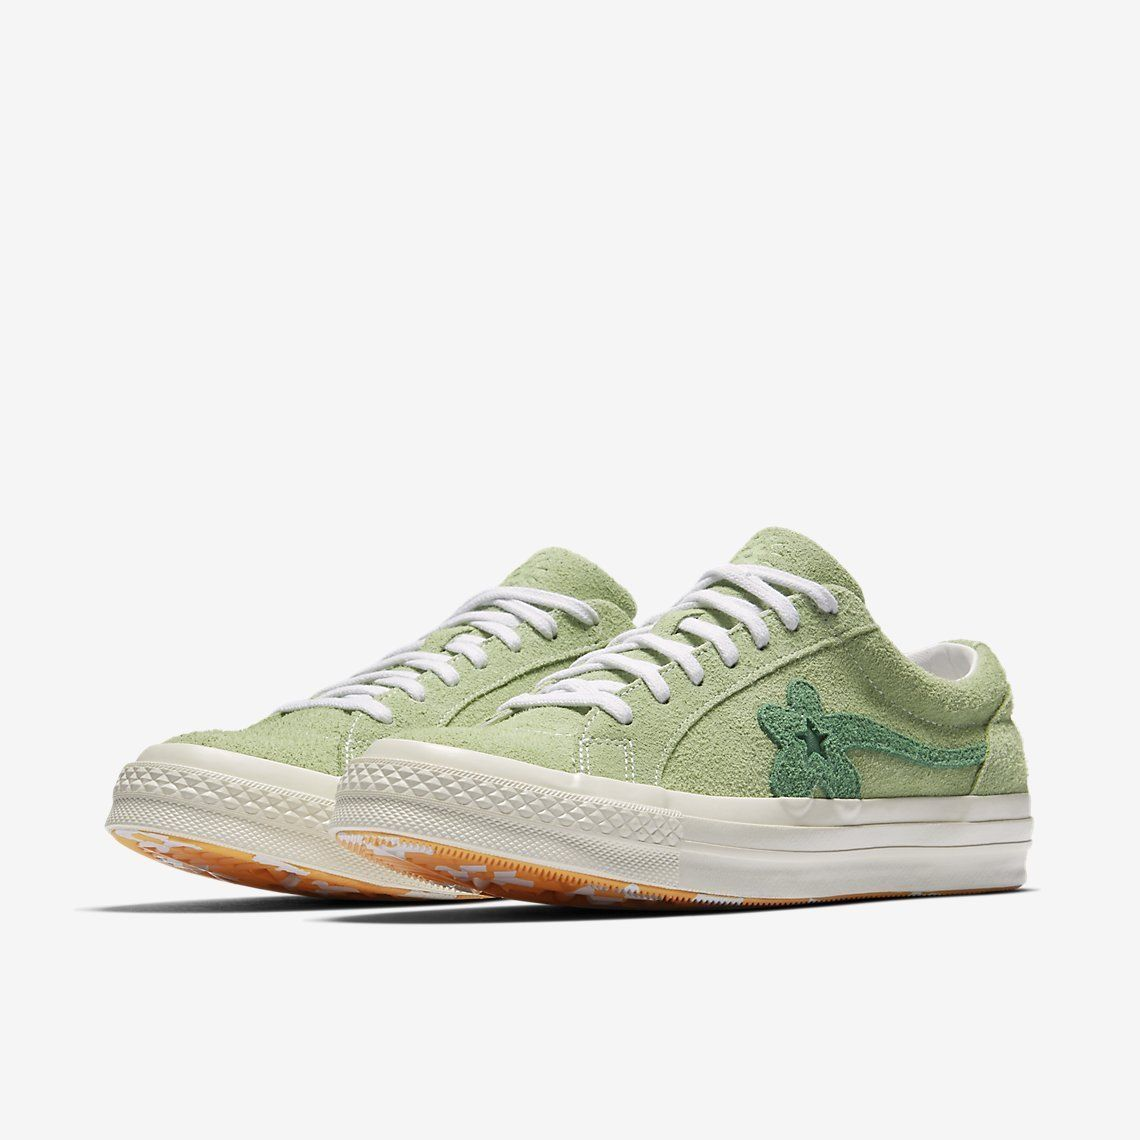 Details About Converse Golf Le Fleur Tyler Creator One Star Pink